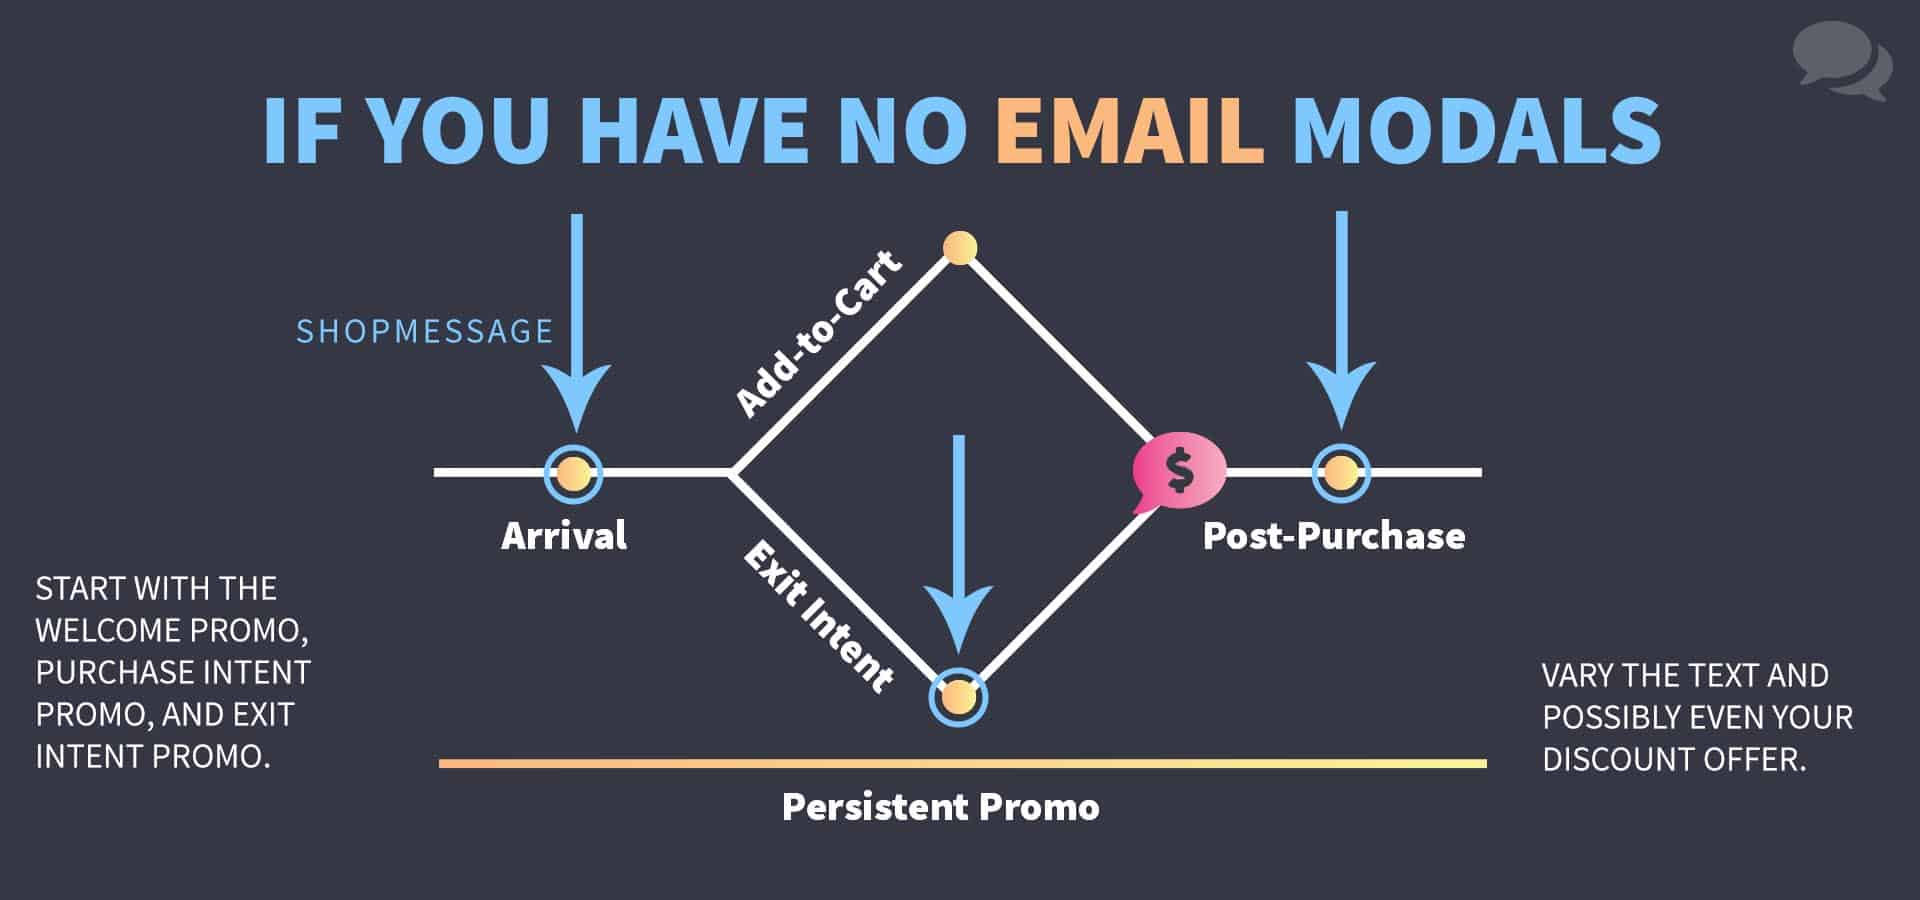 A diagram of how ShopMessage's recommended growth tool strategy if your store has no email modals. Use the welcome, the purchase intent, and the exit intent promos. Vary the text and possibly even your discount offer between promotions.